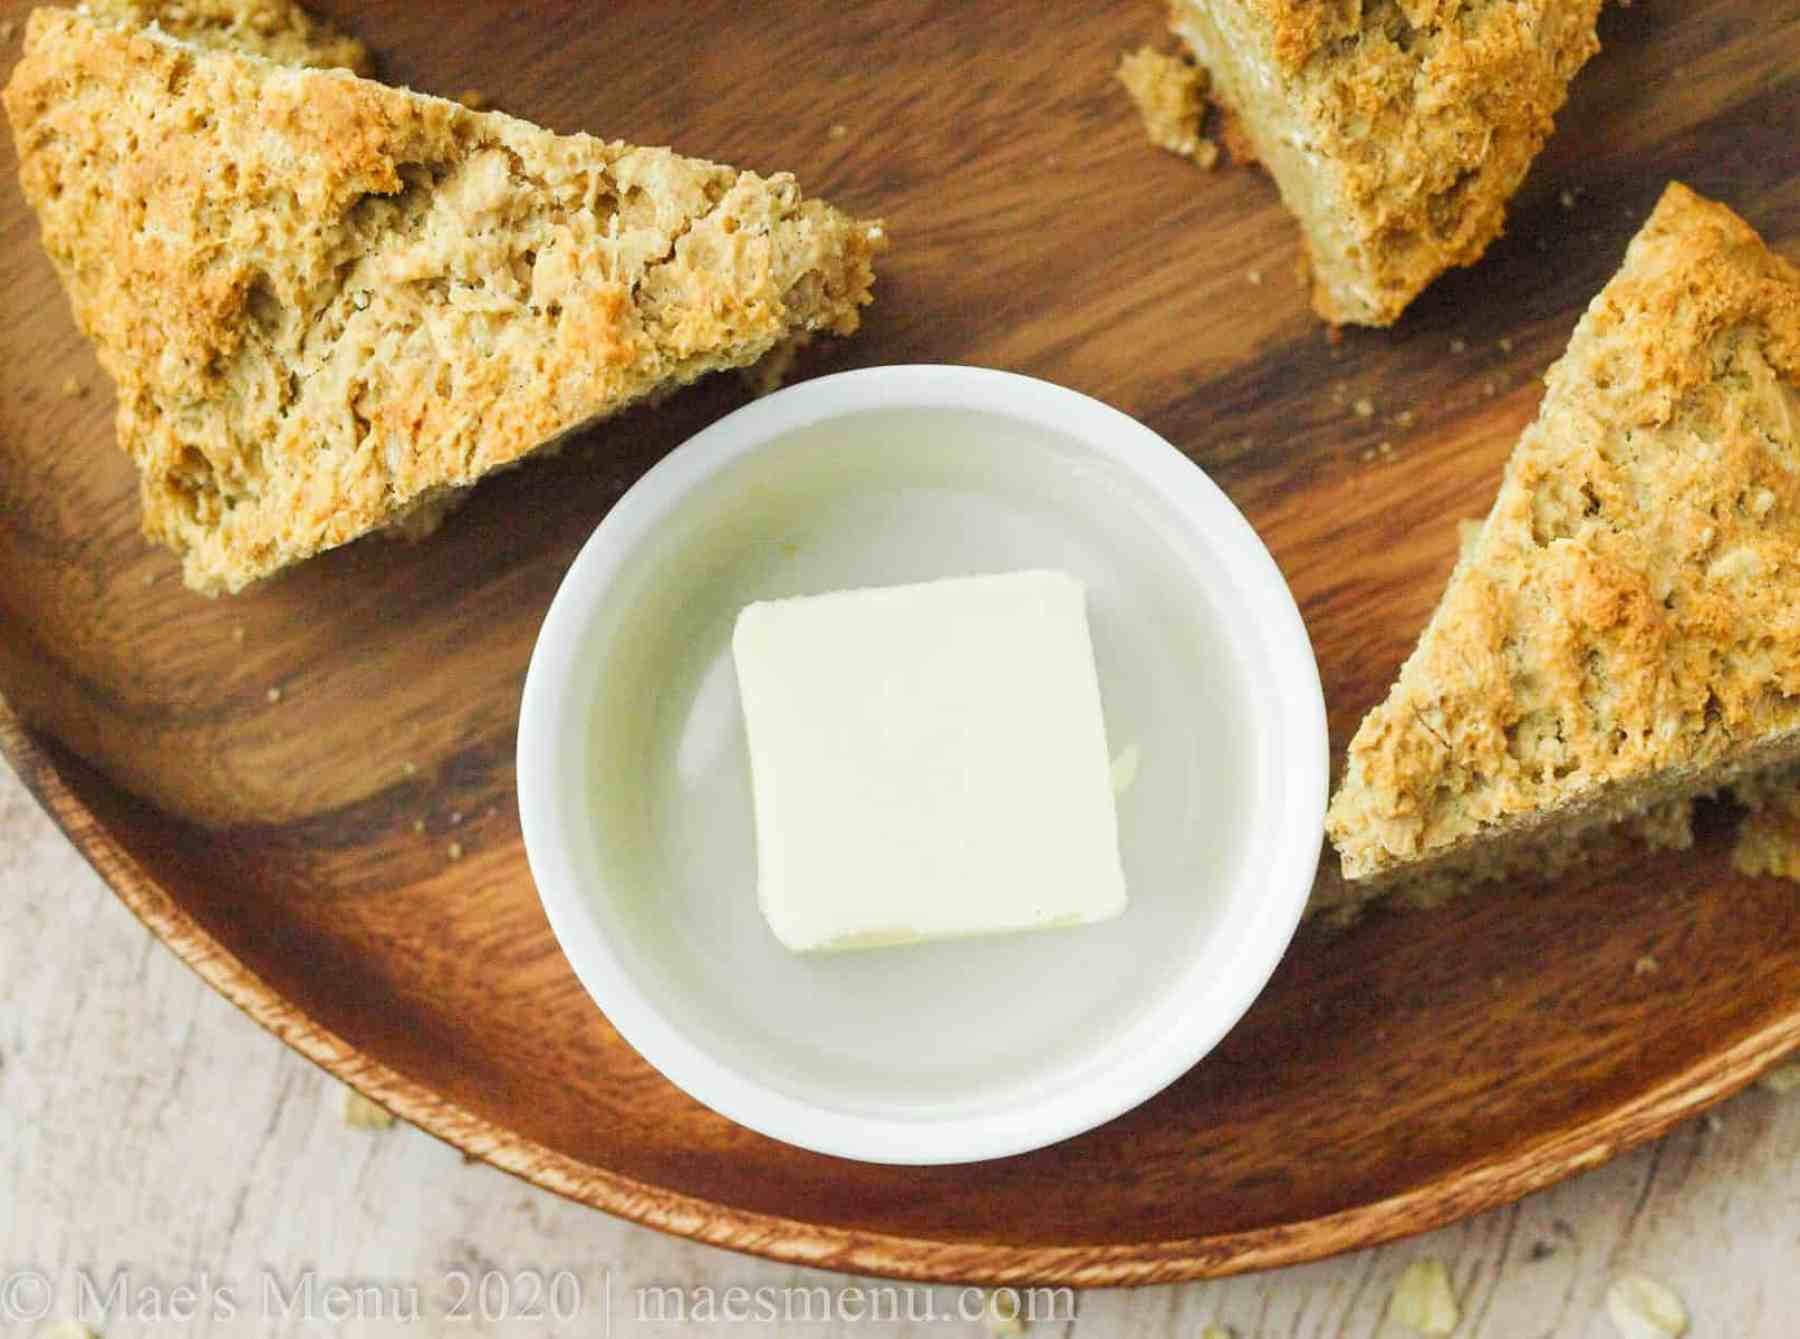 Pieces of oatmeal quick bread next to a crock of butter.